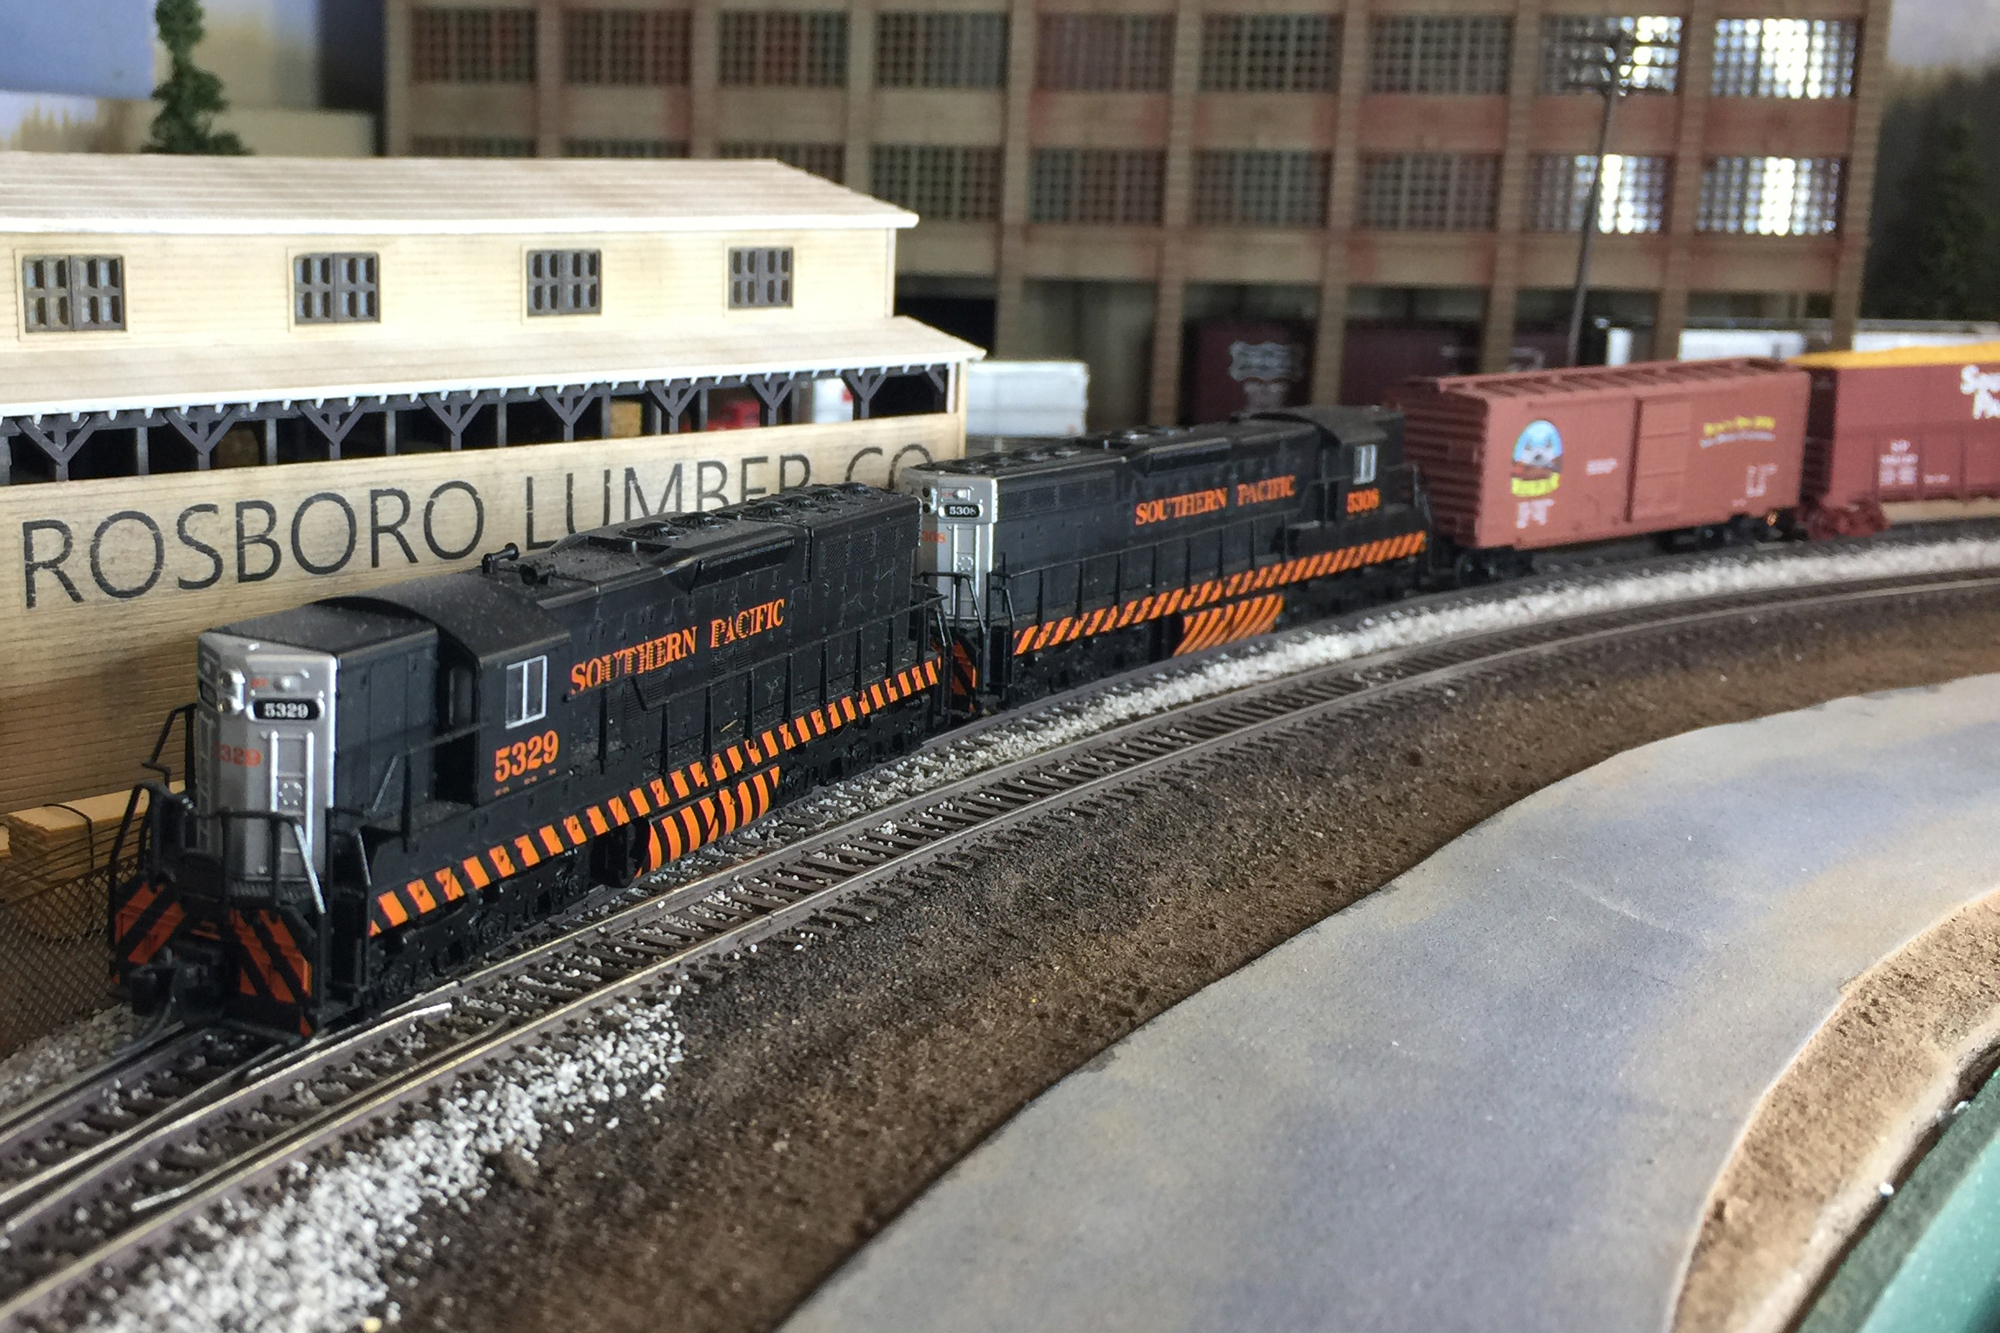 N Scale freight train and layout by Ryan Ryan Di Fede, San Diego Division member.